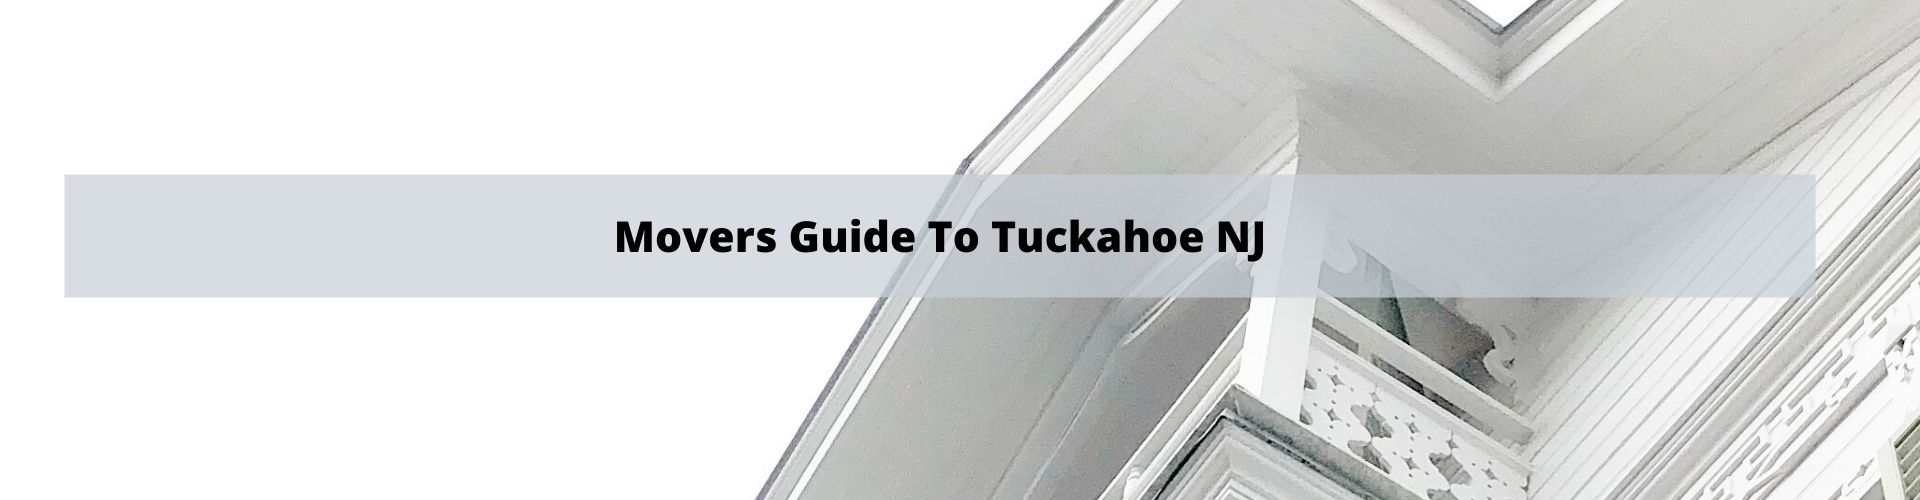 Mover's Guide to Tuckahoe NJ